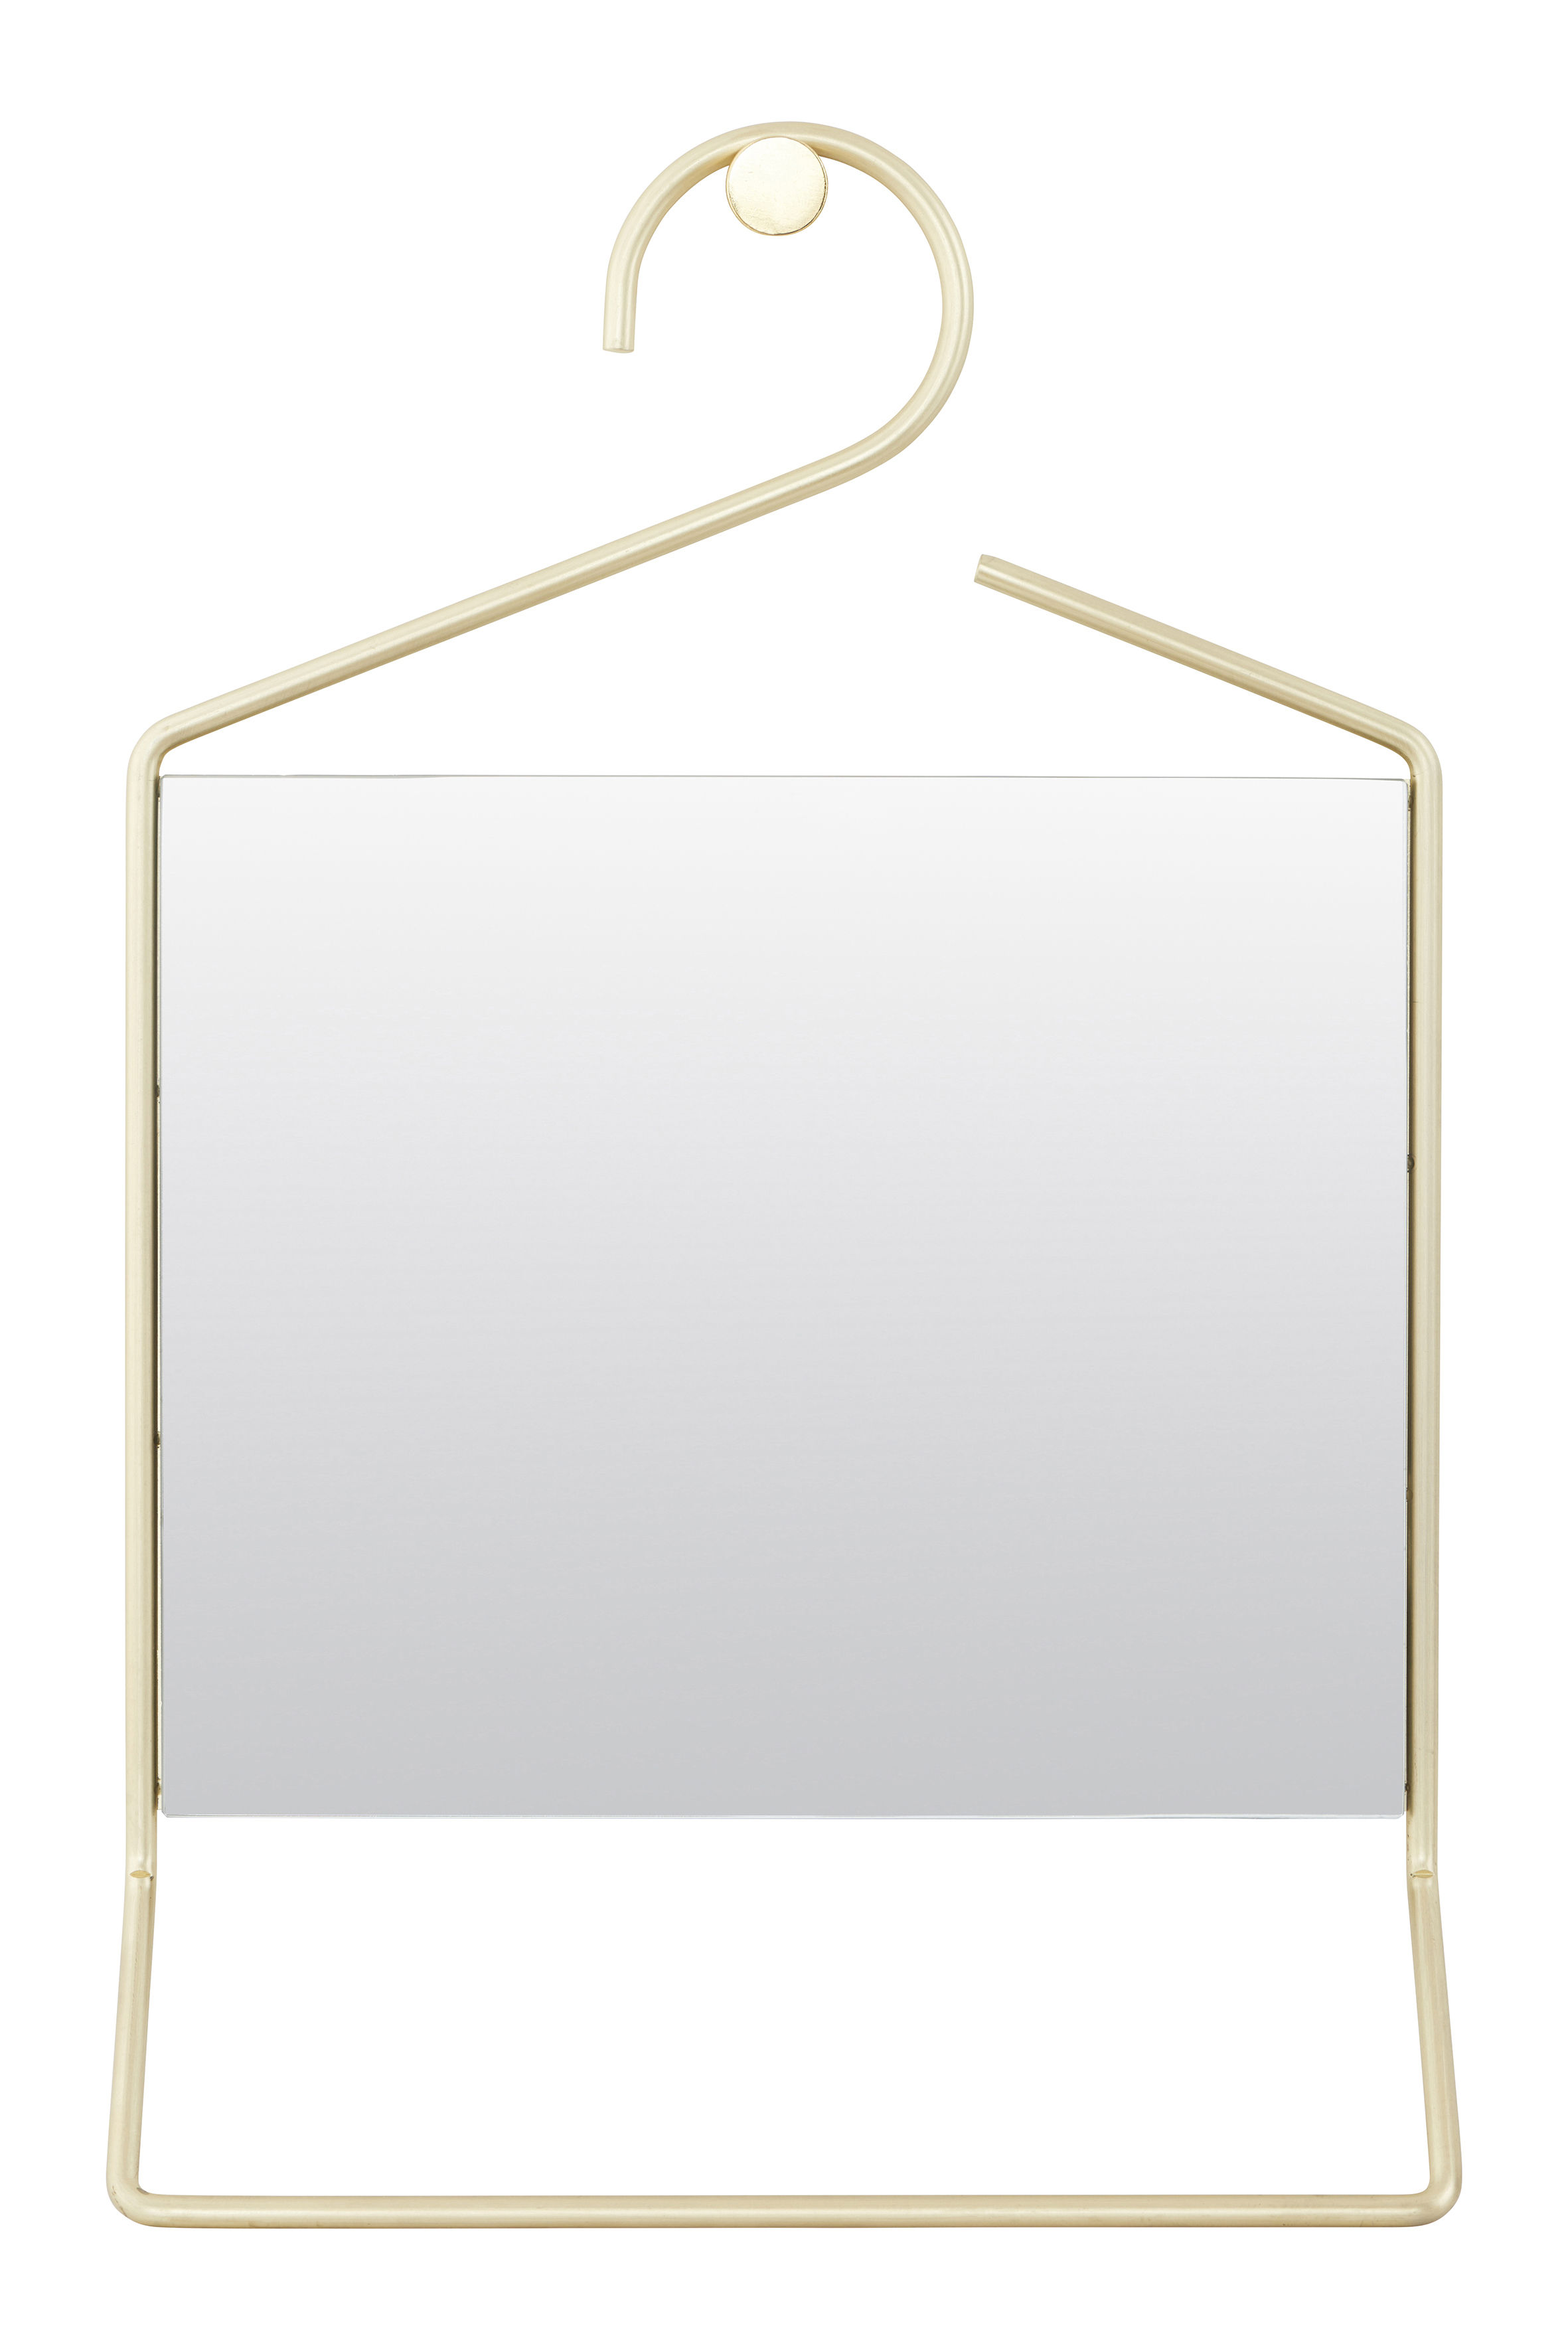 Decoration - Mirrors - Hang Wall mirror - L 32 x H 50 cm by House Doctor - Brass - Brass finish metal, Glass